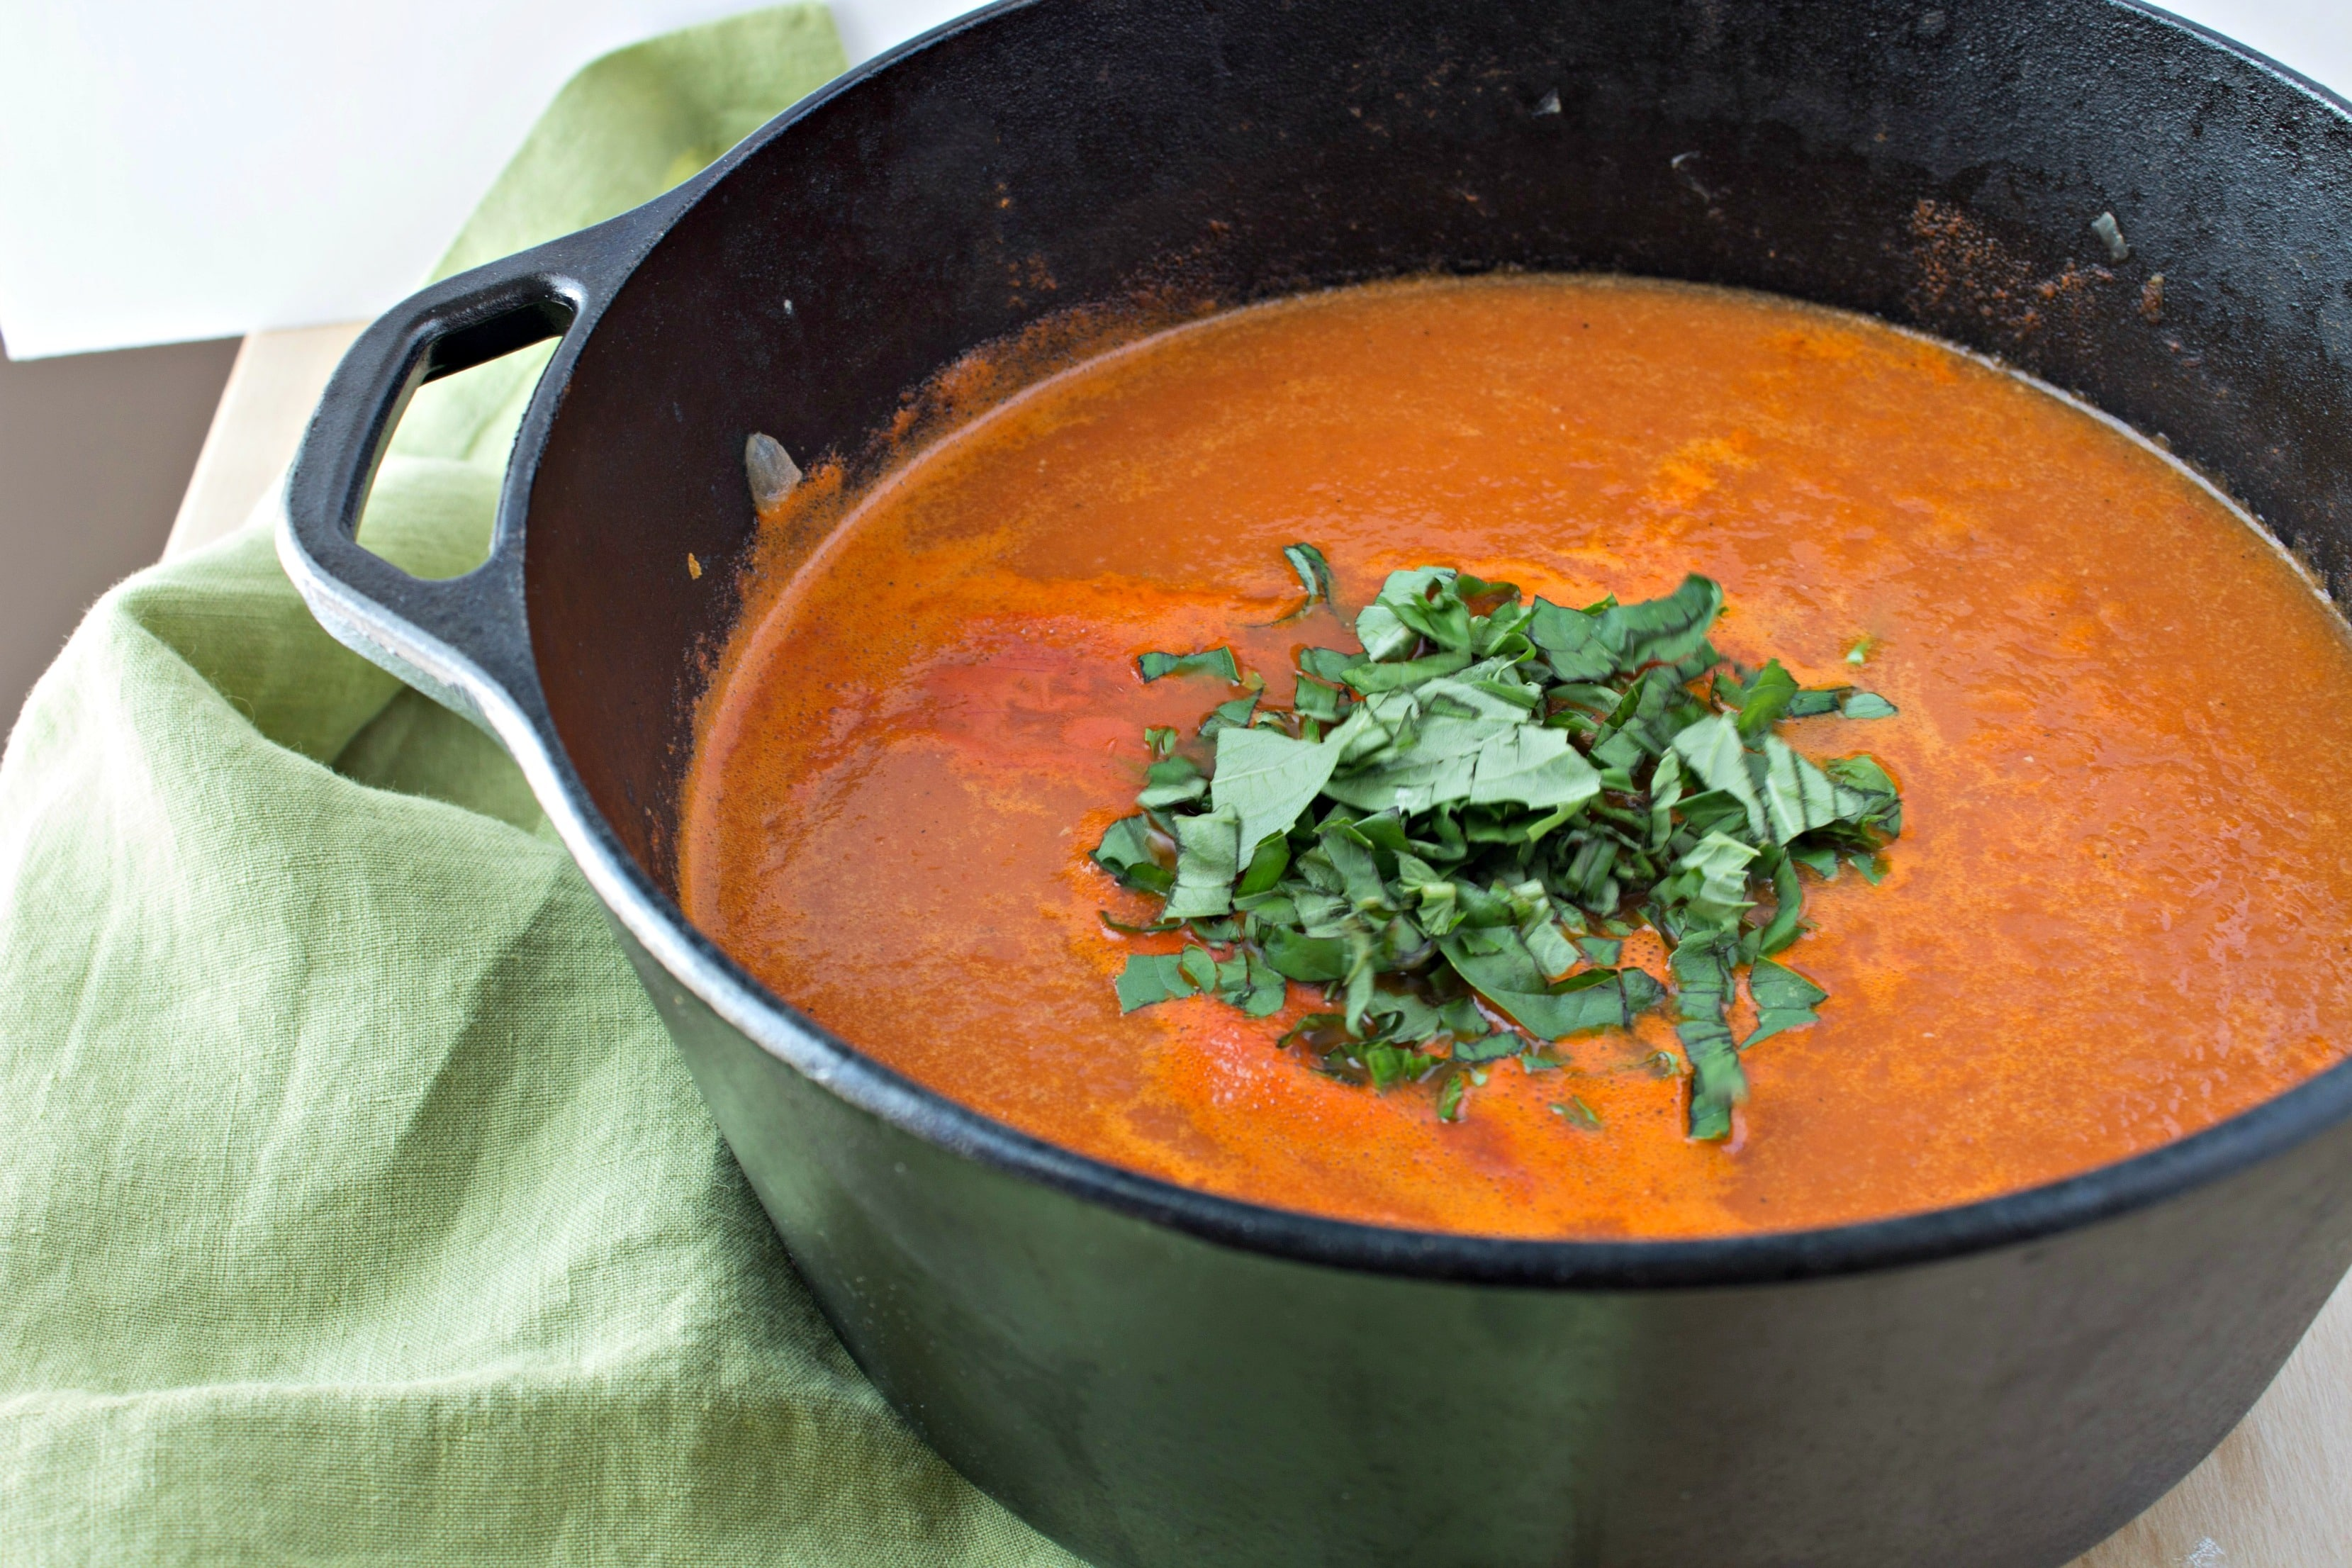 Creamy Tomato Basil Soup - A classic tomato soup, spiced up with the addition of basil and cream. Perfect for dipping your grilled cheese.